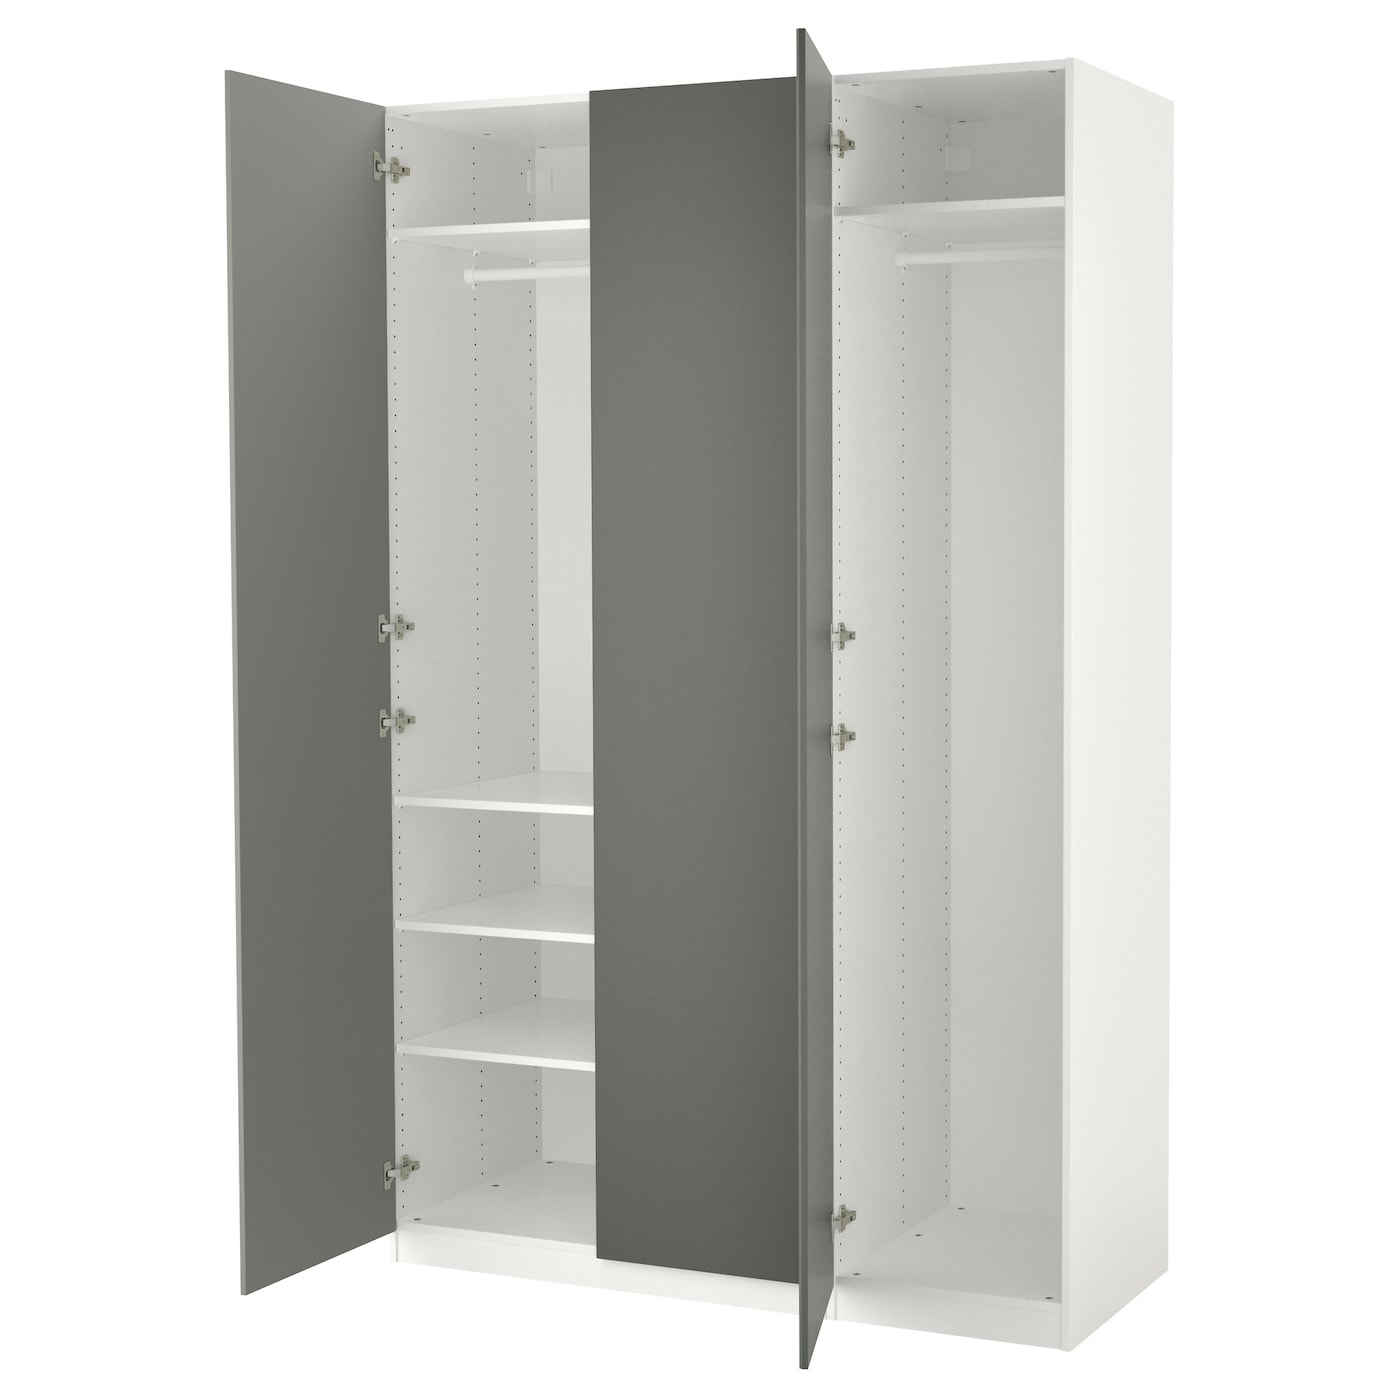 pax armoire penderie blanc reinsvoll gris vert 150 x 60 x 236 cm ikea. Black Bedroom Furniture Sets. Home Design Ideas